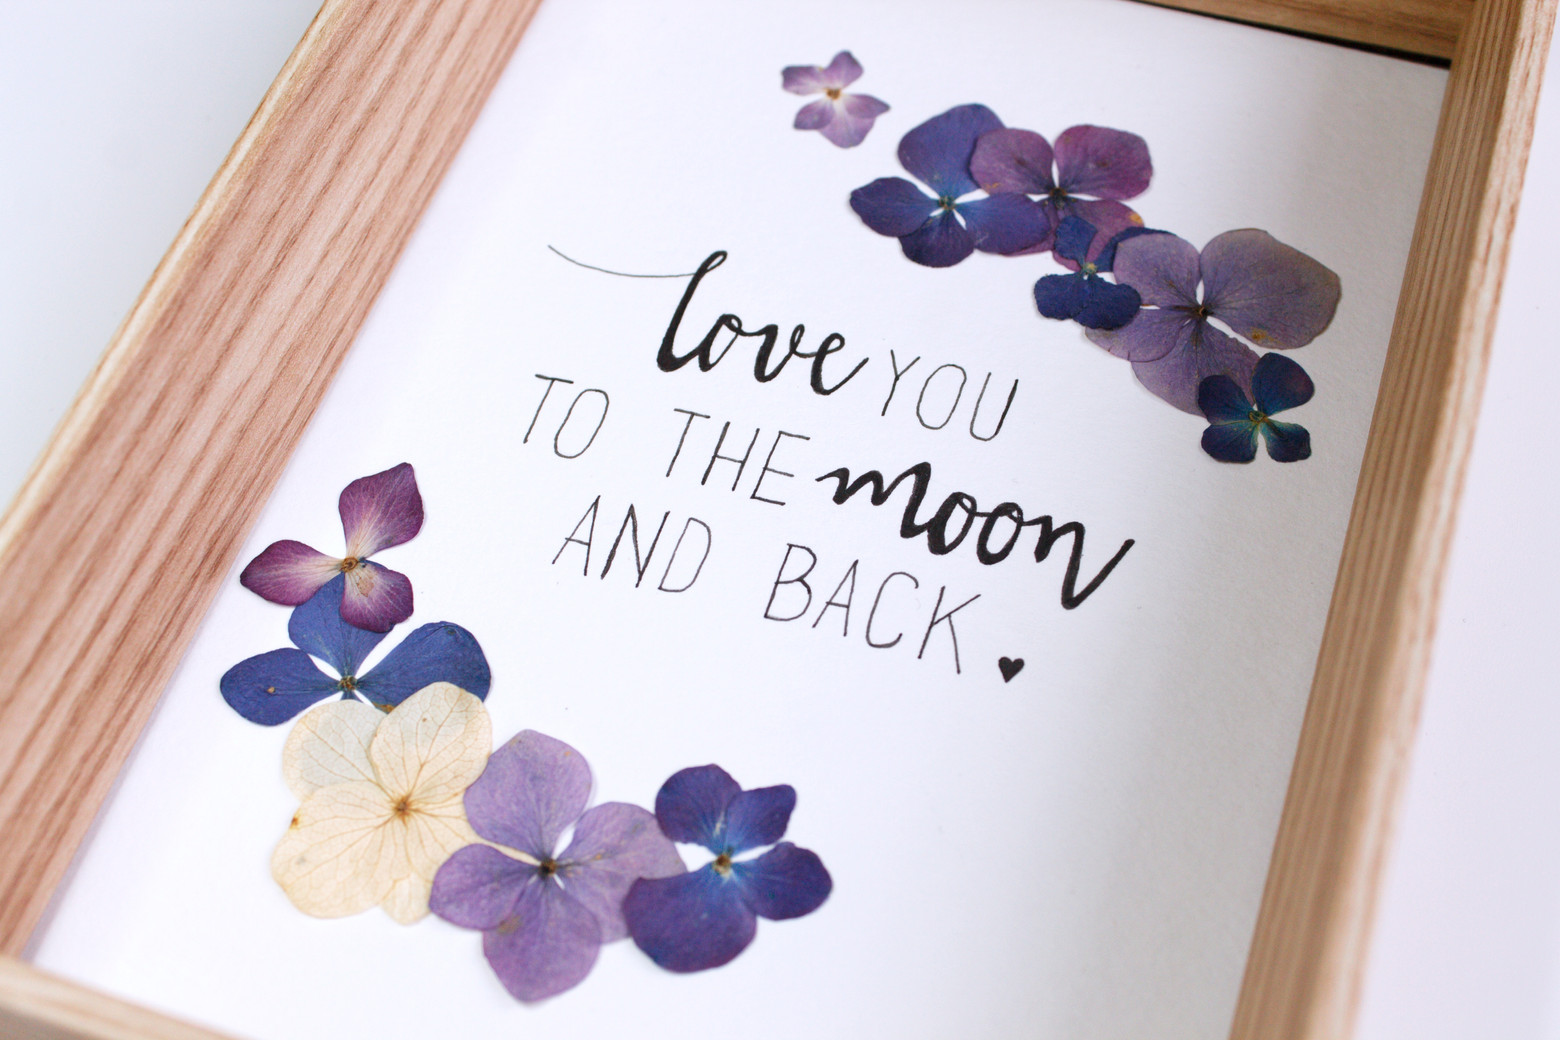 Herbier Love you to the moon and back - Atelier Sauvage